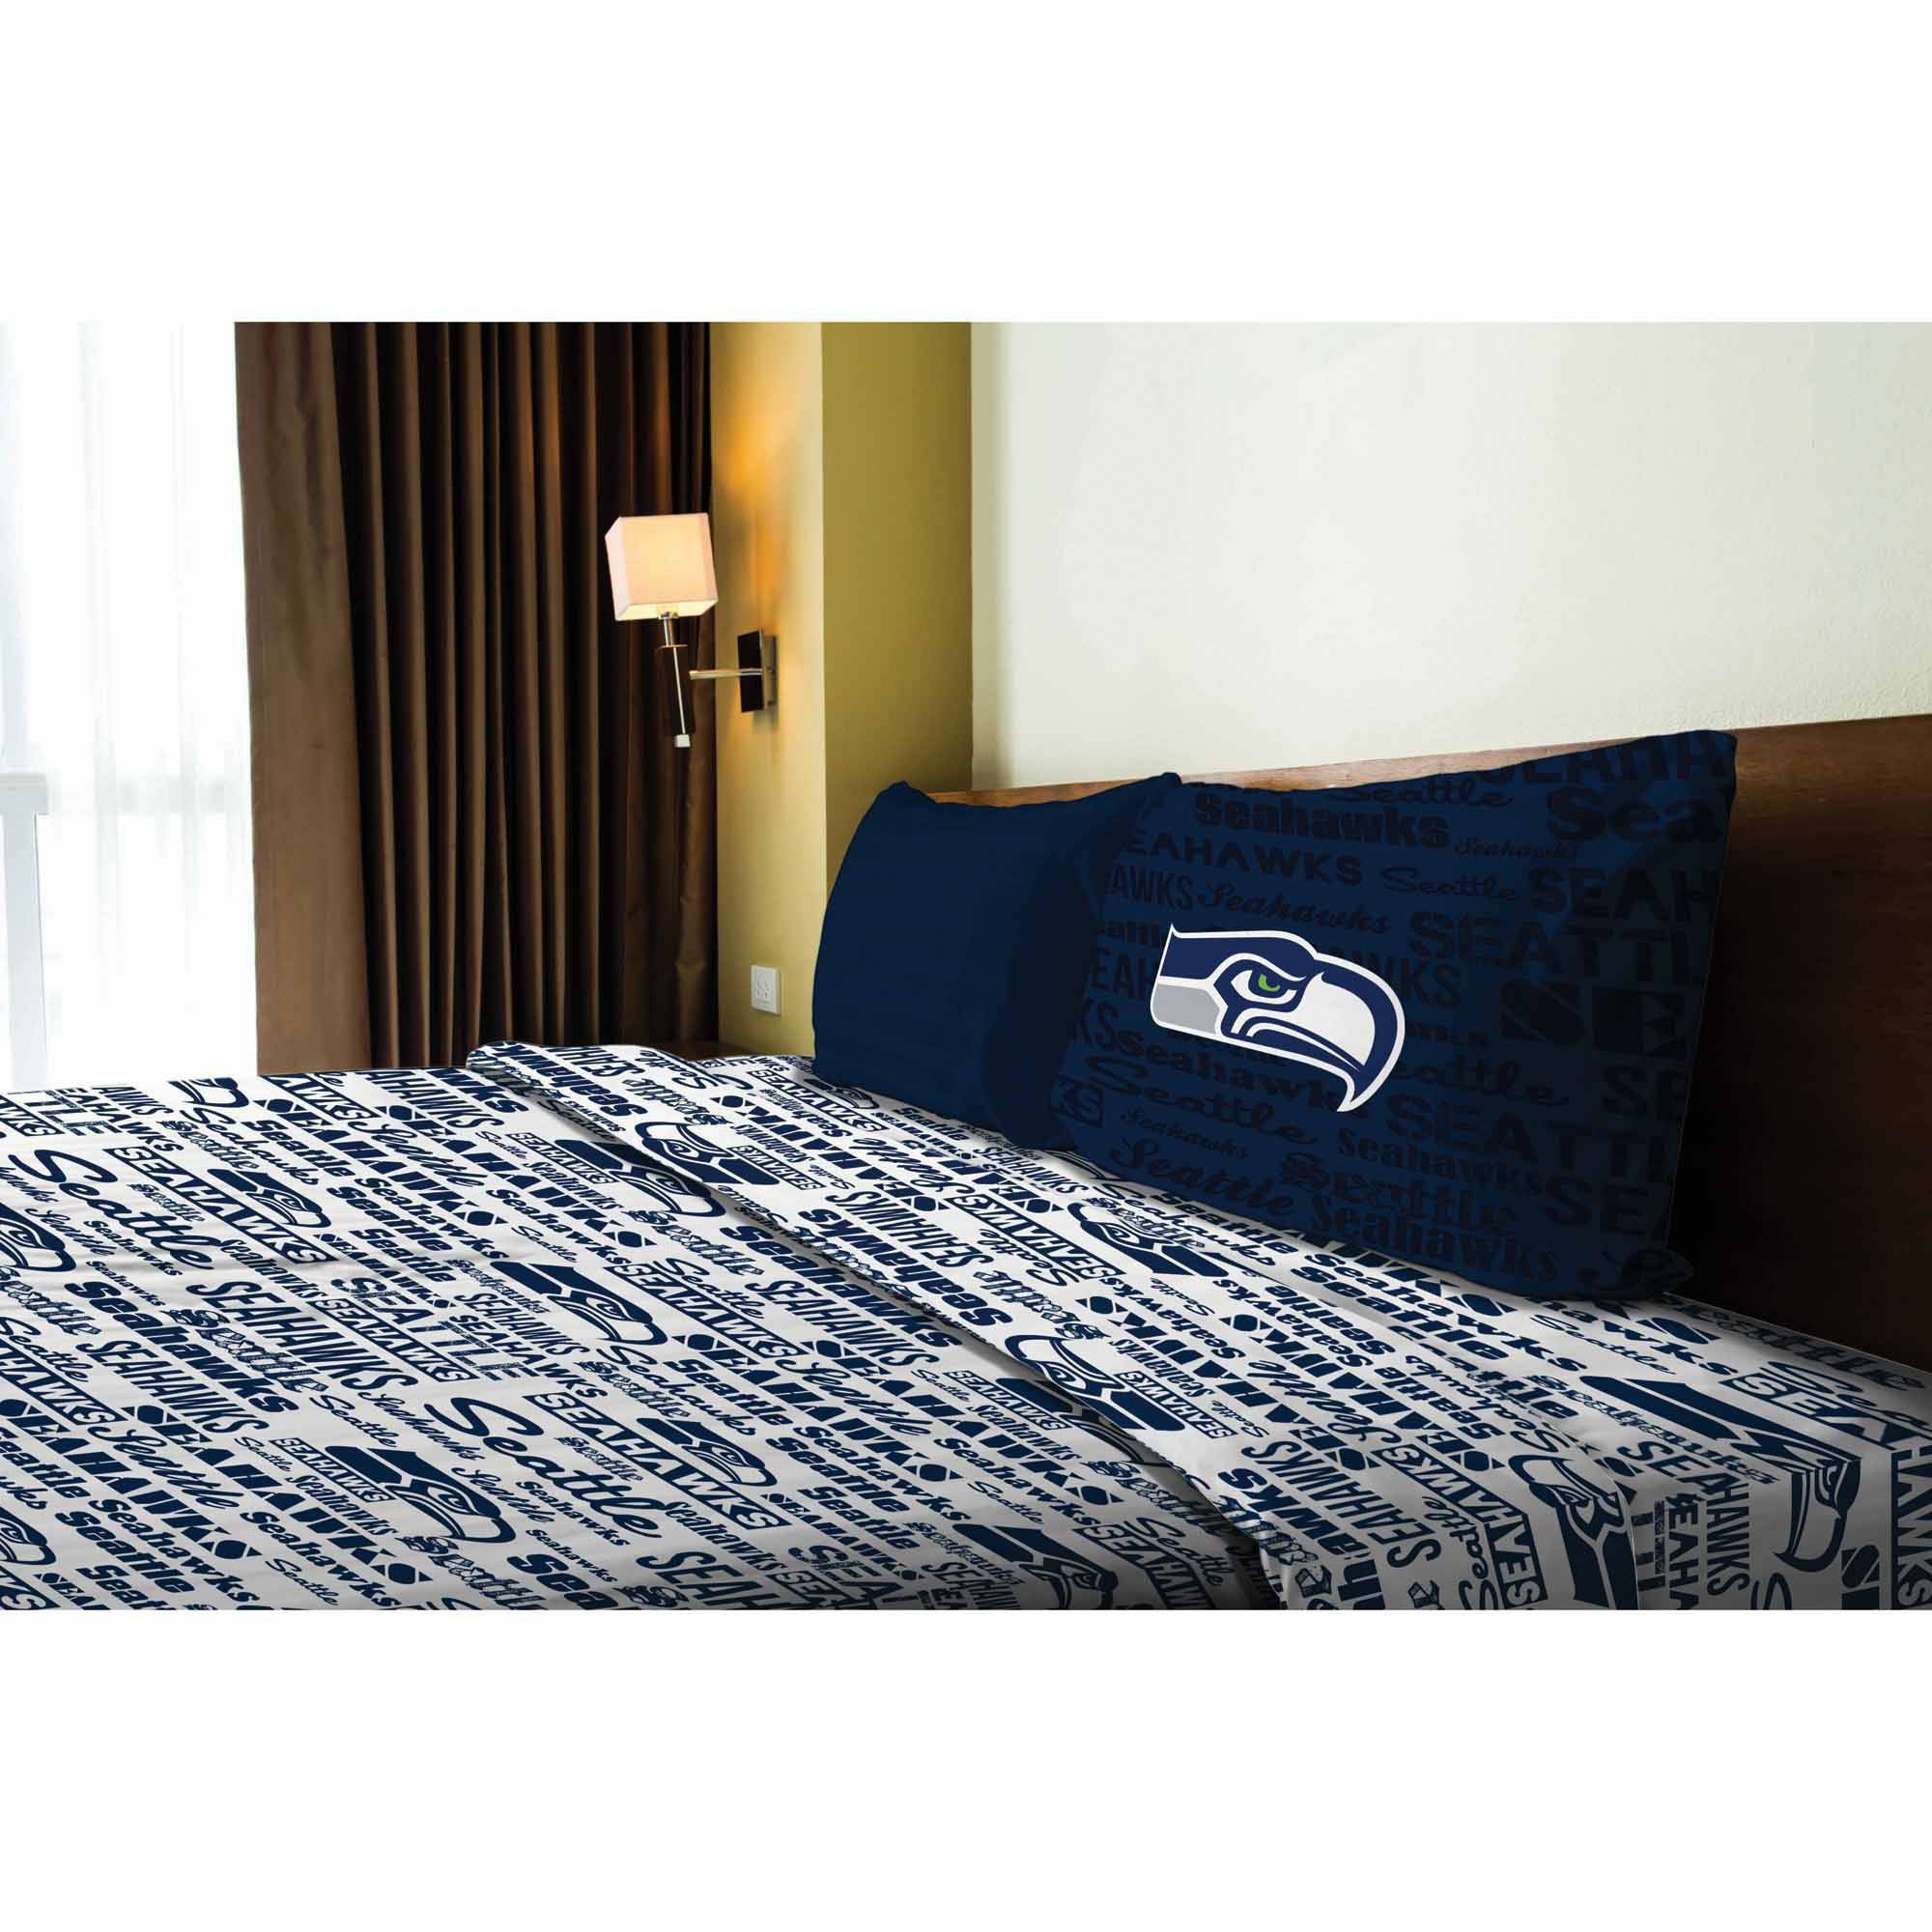 Nfl bedding for boys - Nfl Bedding For Boys 24